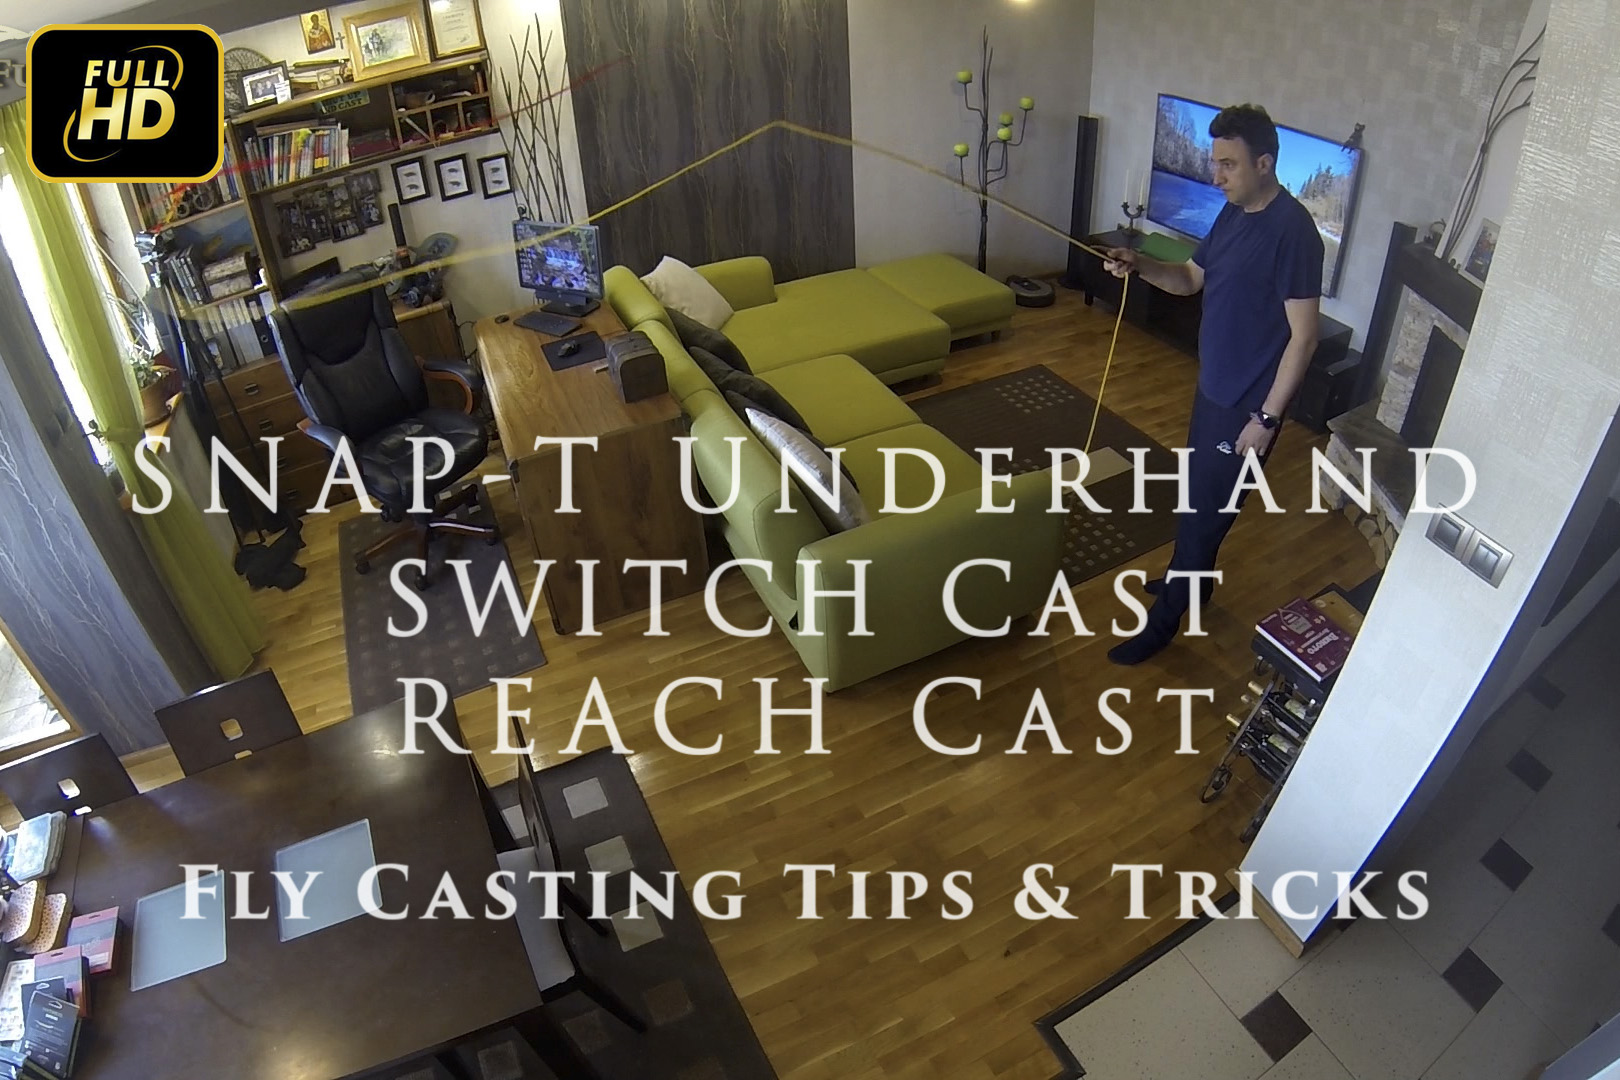 Snаp T Underhand + Switch Cast + Reach Ca